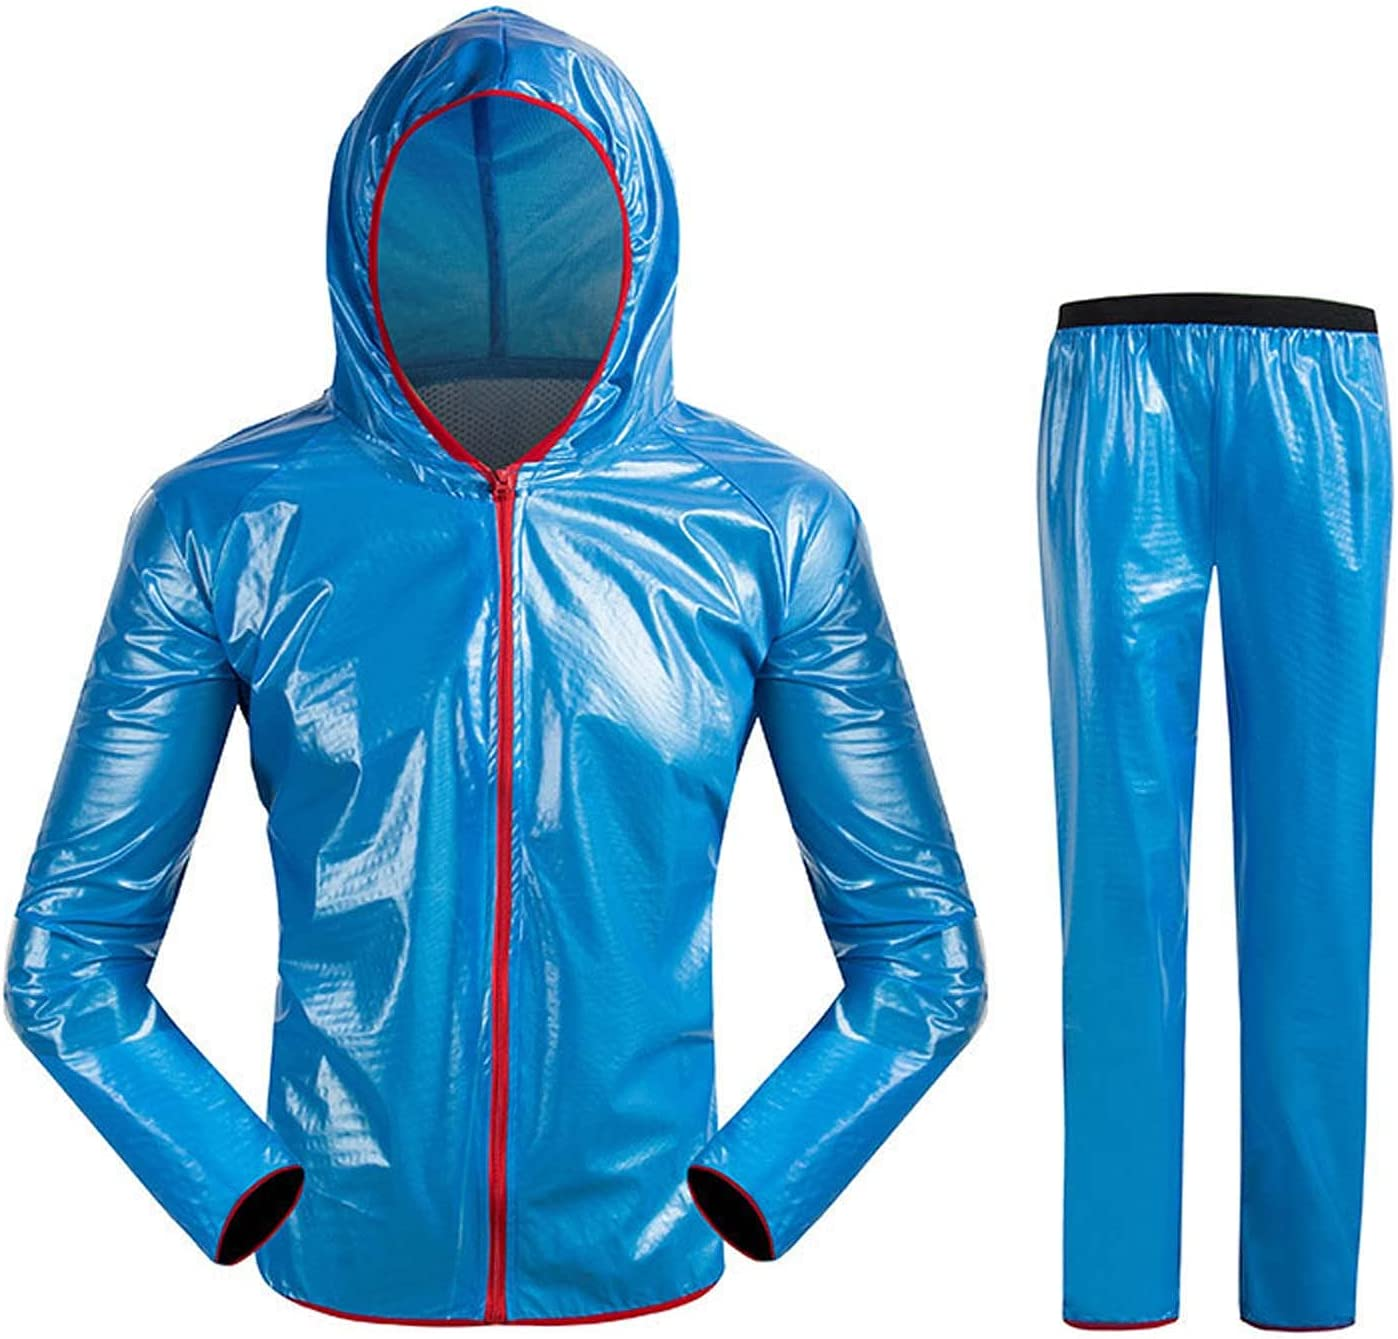 FHGH Adult Split Raincoat, Waterproof Cycling Raincoat and Trousers, for Cycling Climbing Fishing Takeaway,B,Large